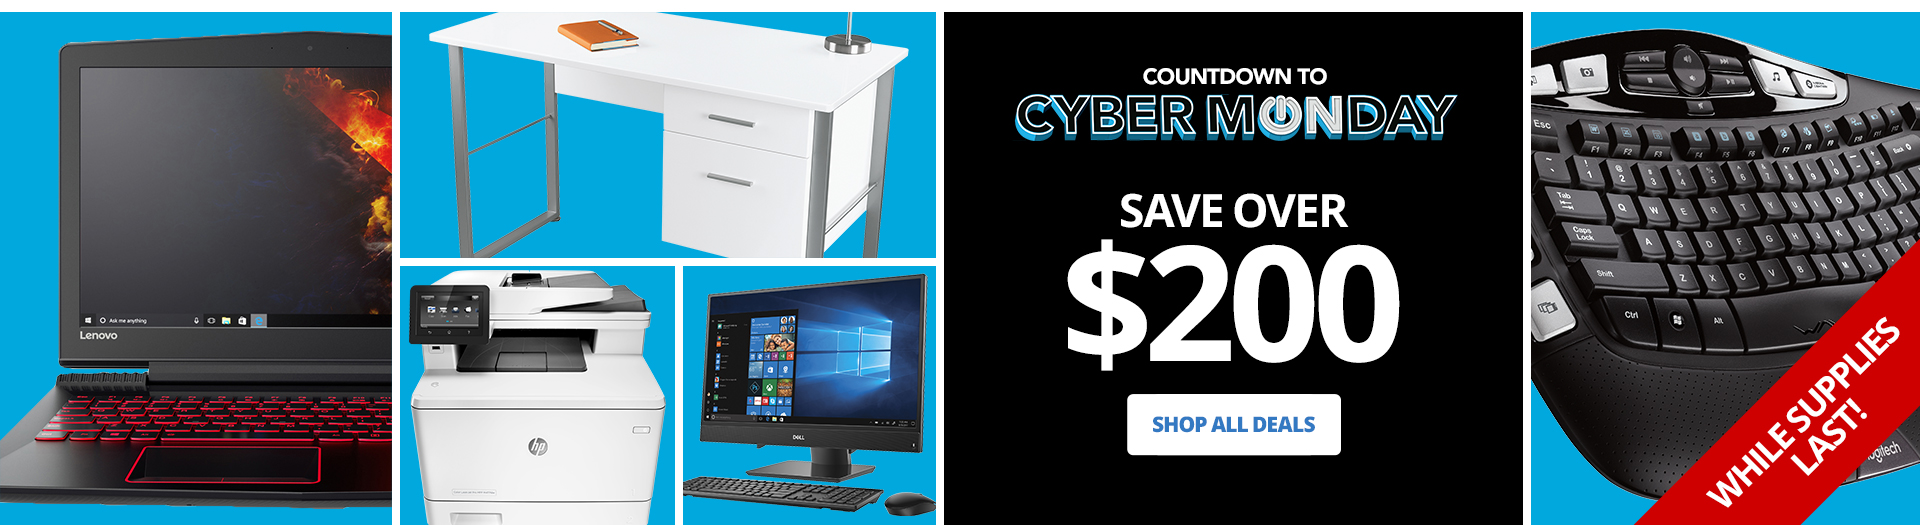 Countdown To Cyber Monday Save Over $200